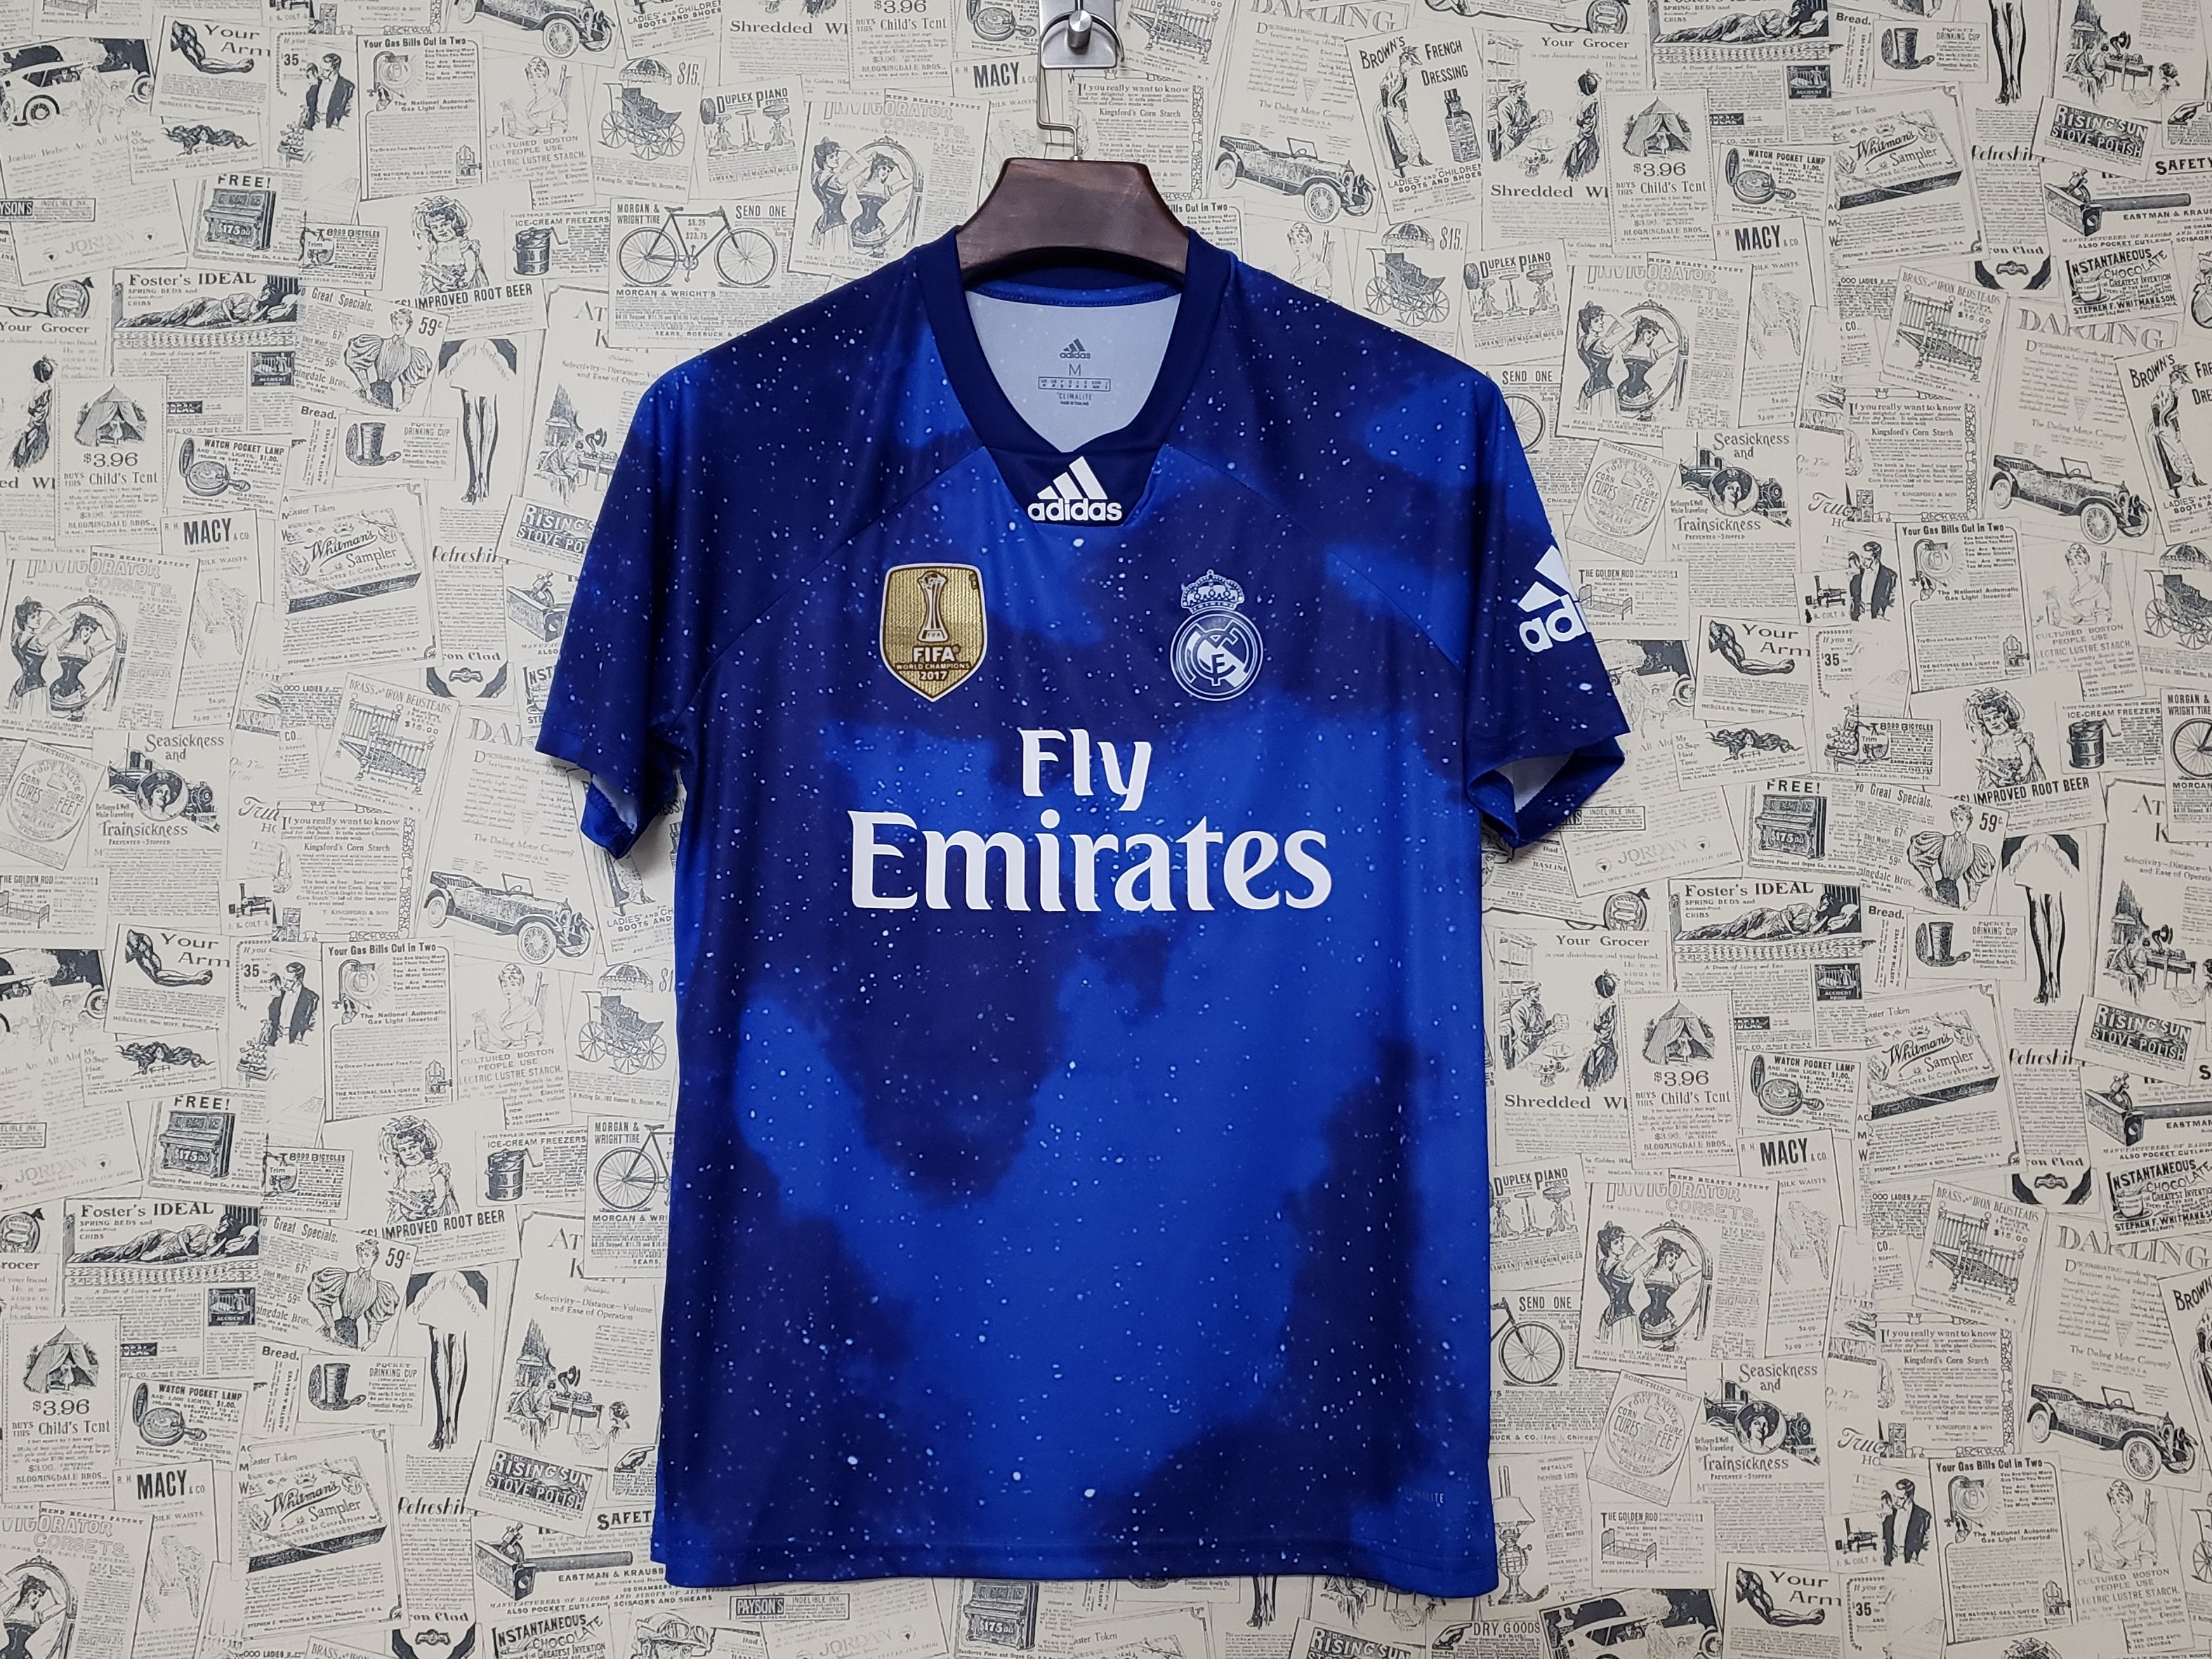 Camisa Real Madrid Ea Sports Acesse Nosso Site Para Comprar Camisa Adidas Camisa Camisa Real Madrid